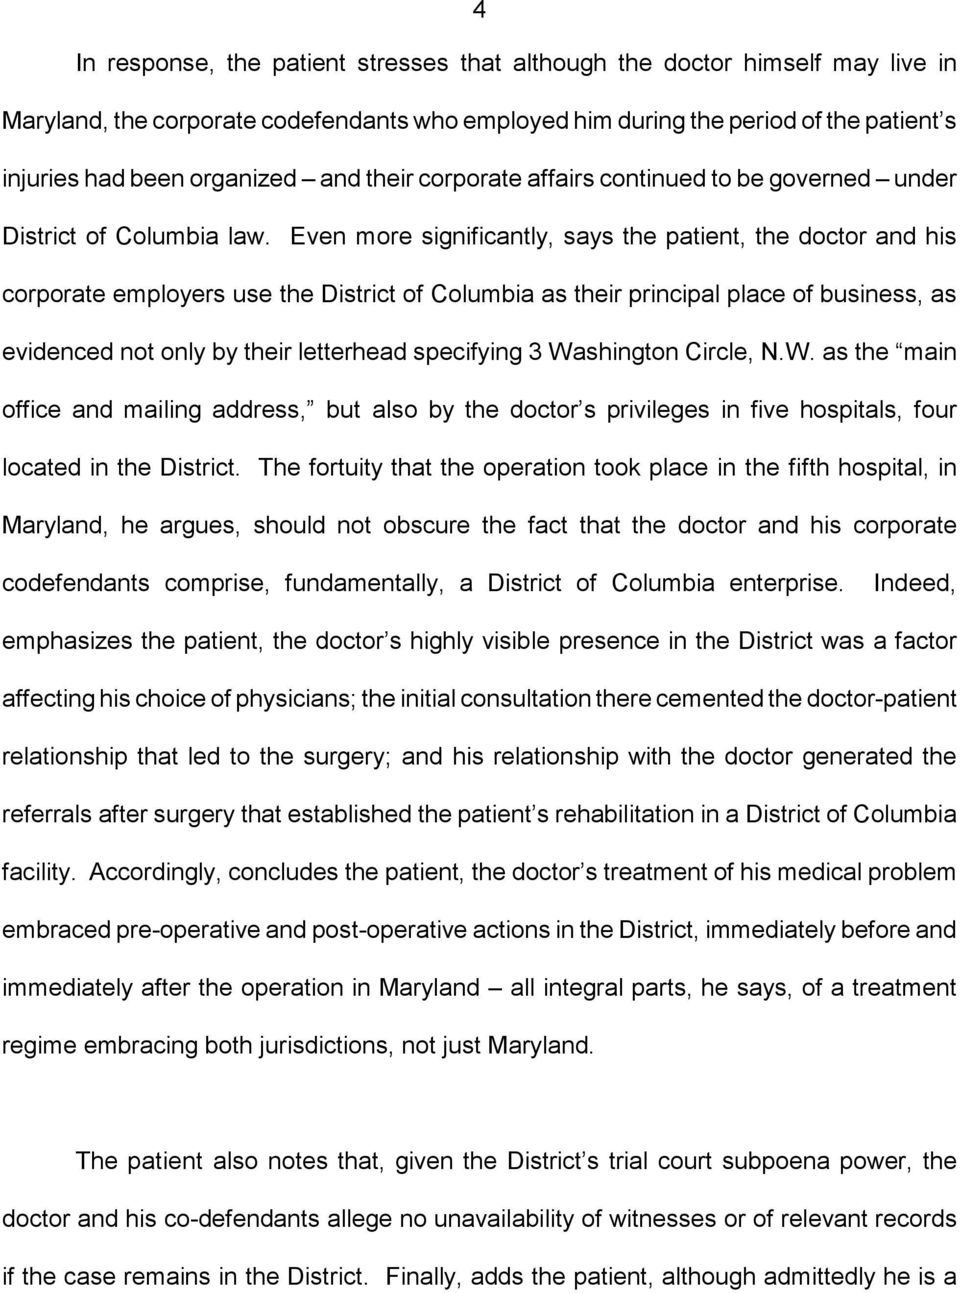 Even more significantly, says the patient, the doctor and his corporate employers use the District of Columbia as their principal place of business, as evidenced not only by their letterhead